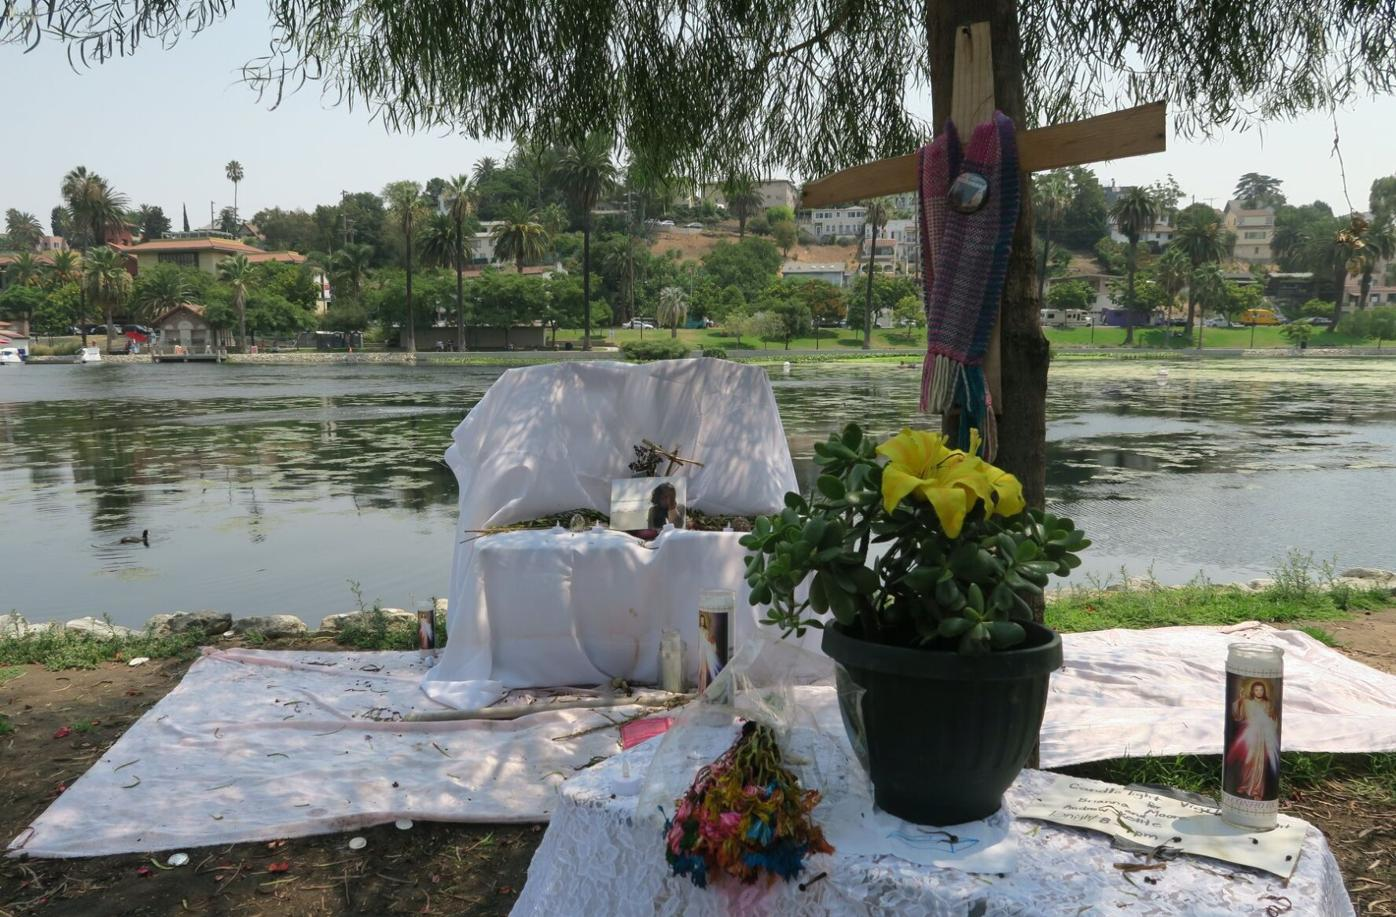 Brianna Moore memorial at echo park lake photo by jesus sanchez 8-11-2020 12-53-12 PM.JPG